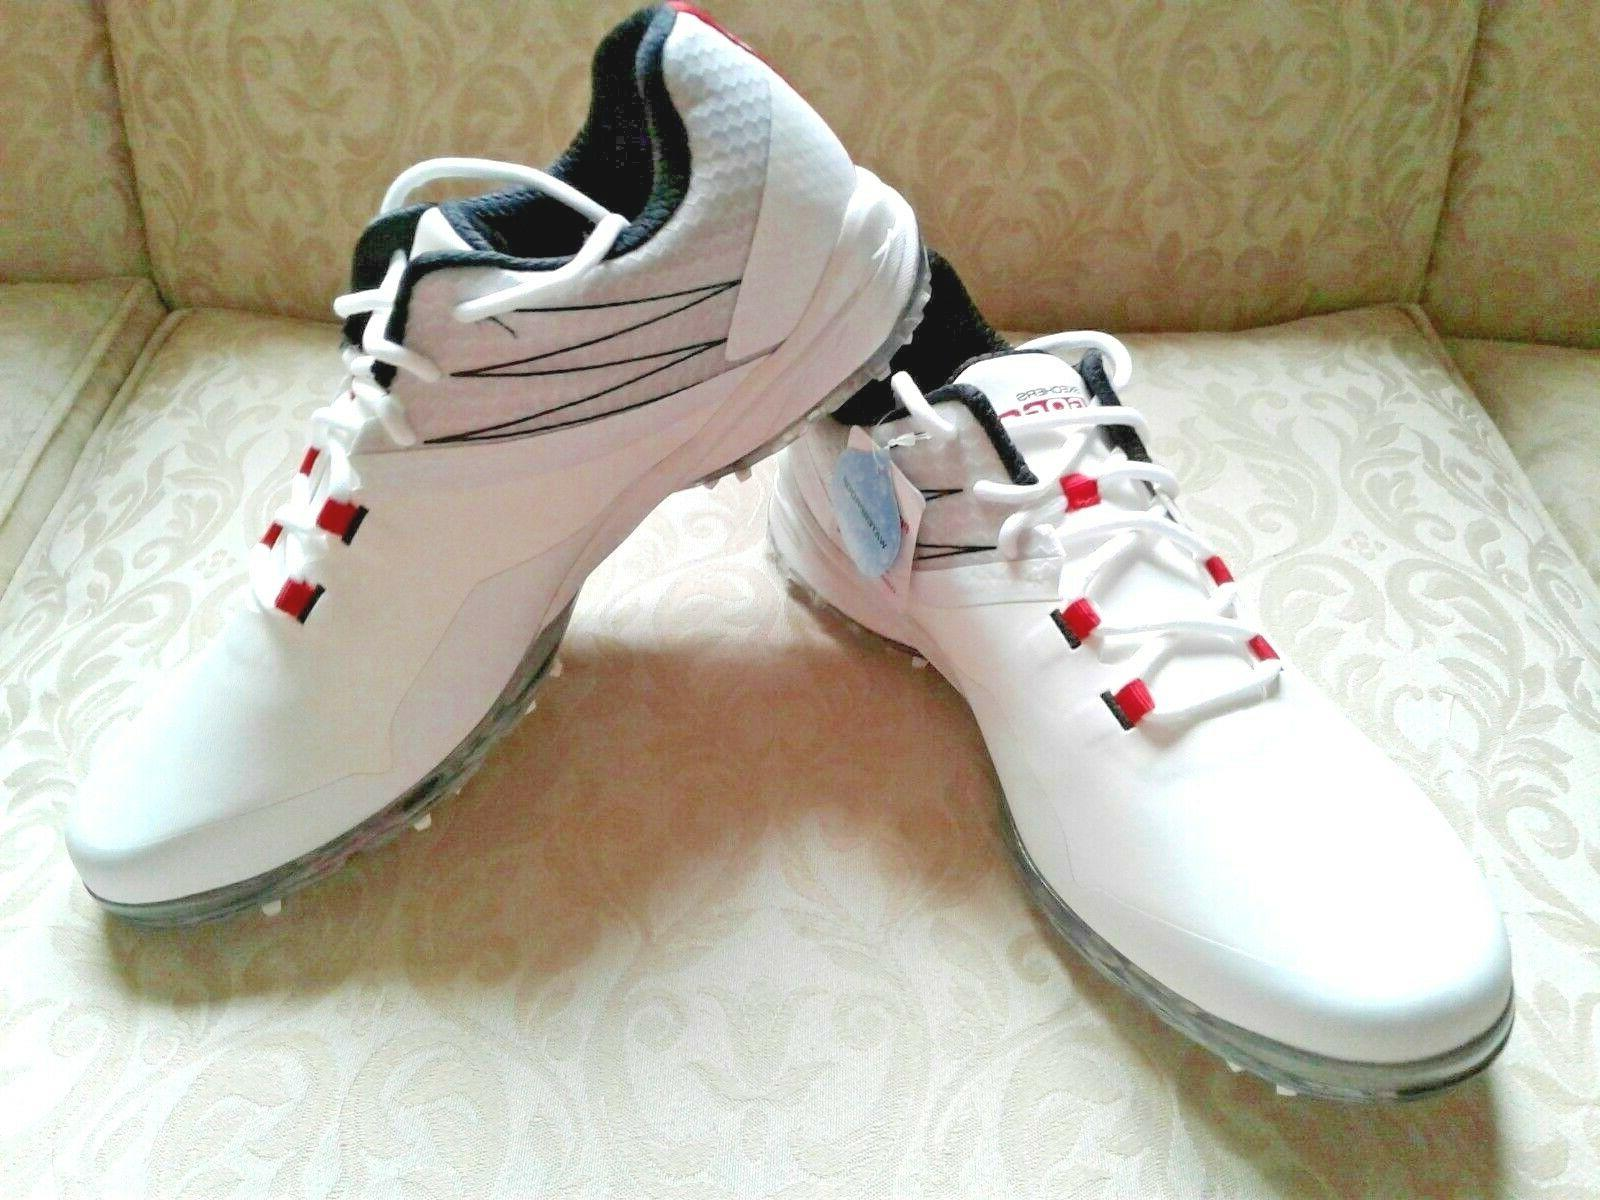 Skechers Mens GoGolf Focus Waterproof Golf Shoes Size-7.5 Wh